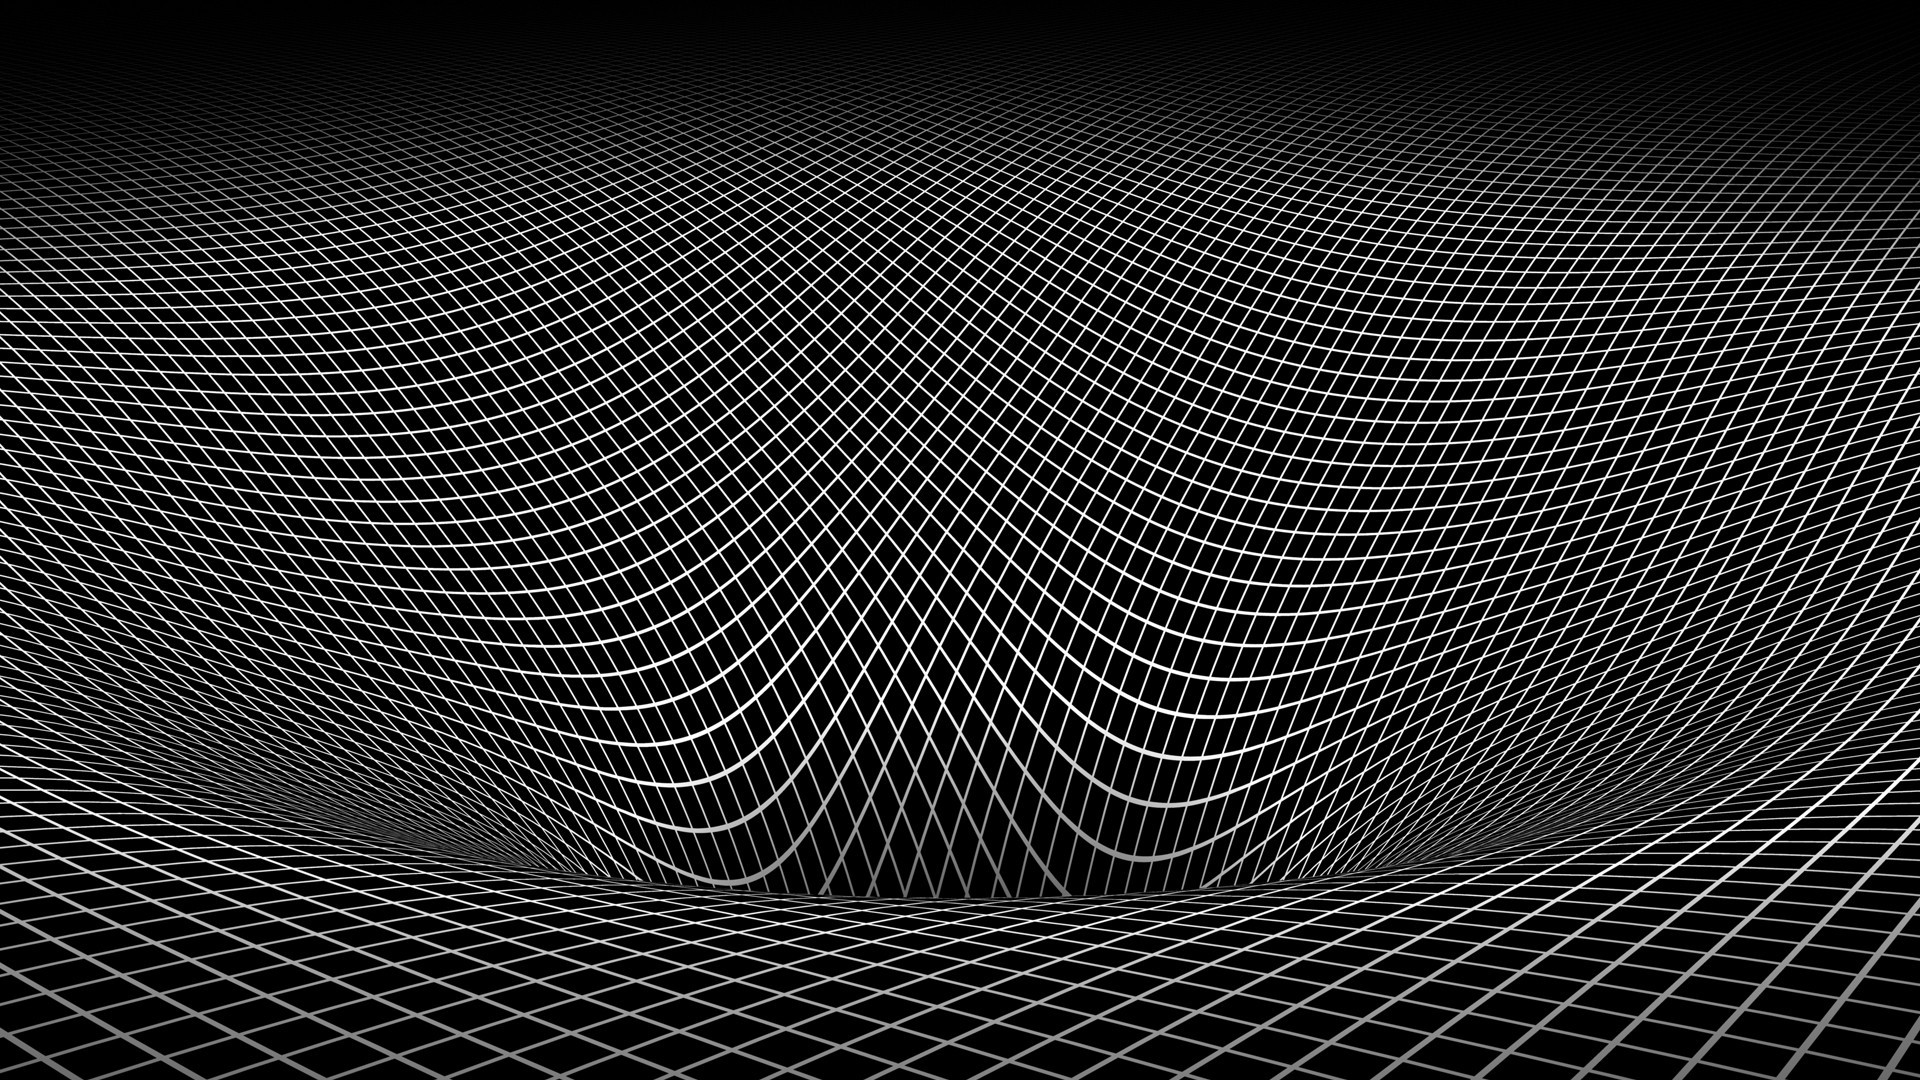 Abstract black and white gravity hole 3d warped wallpaper for Wallpaper 3d white